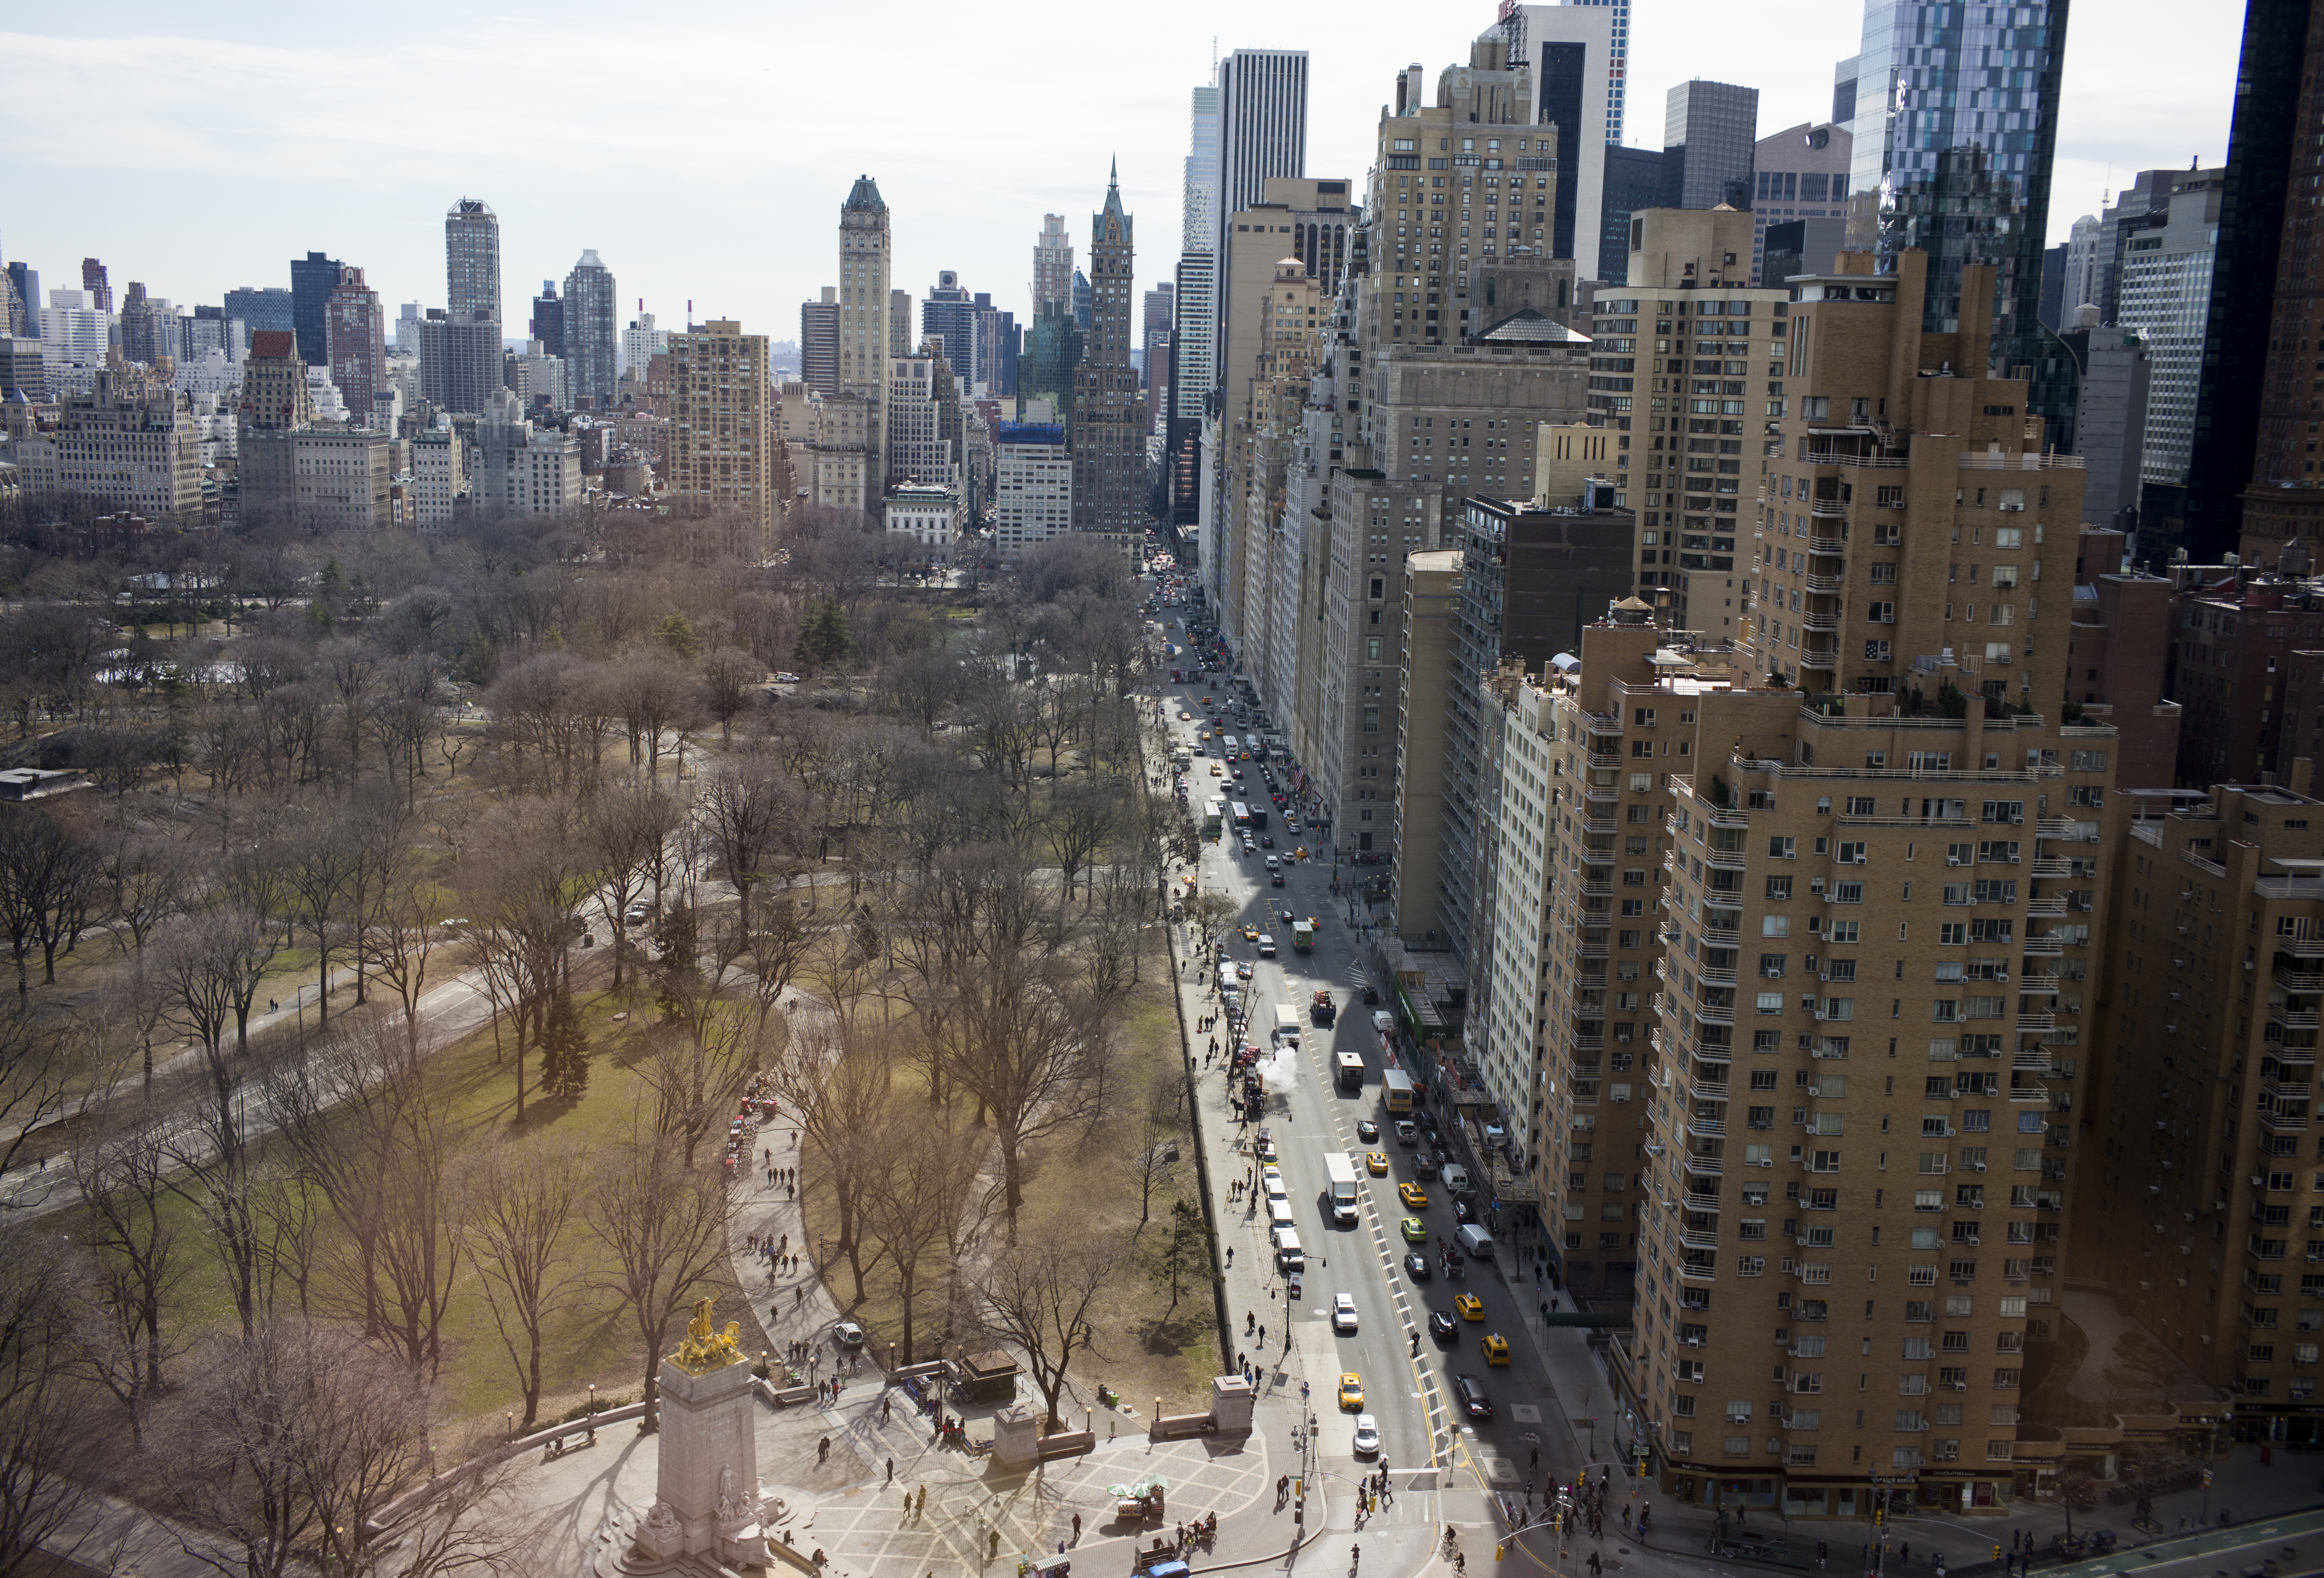 Luxury high-rise apartments are viewed across Central Park South near Columbus Circle in Manhattan.